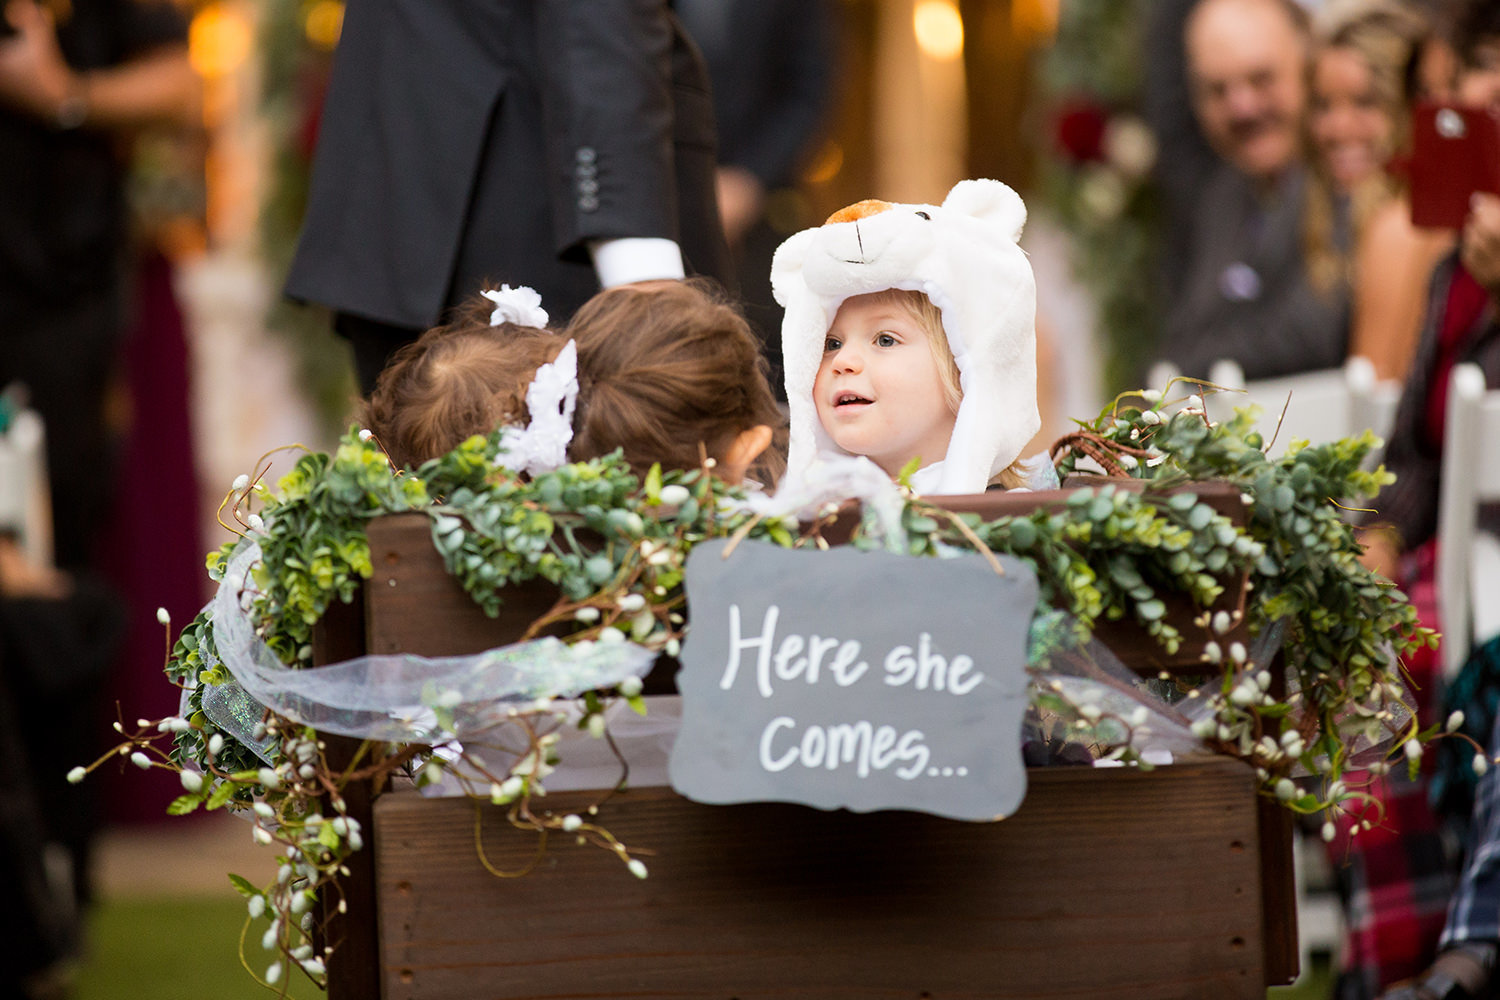 Adorable ring bearer makes his entrance